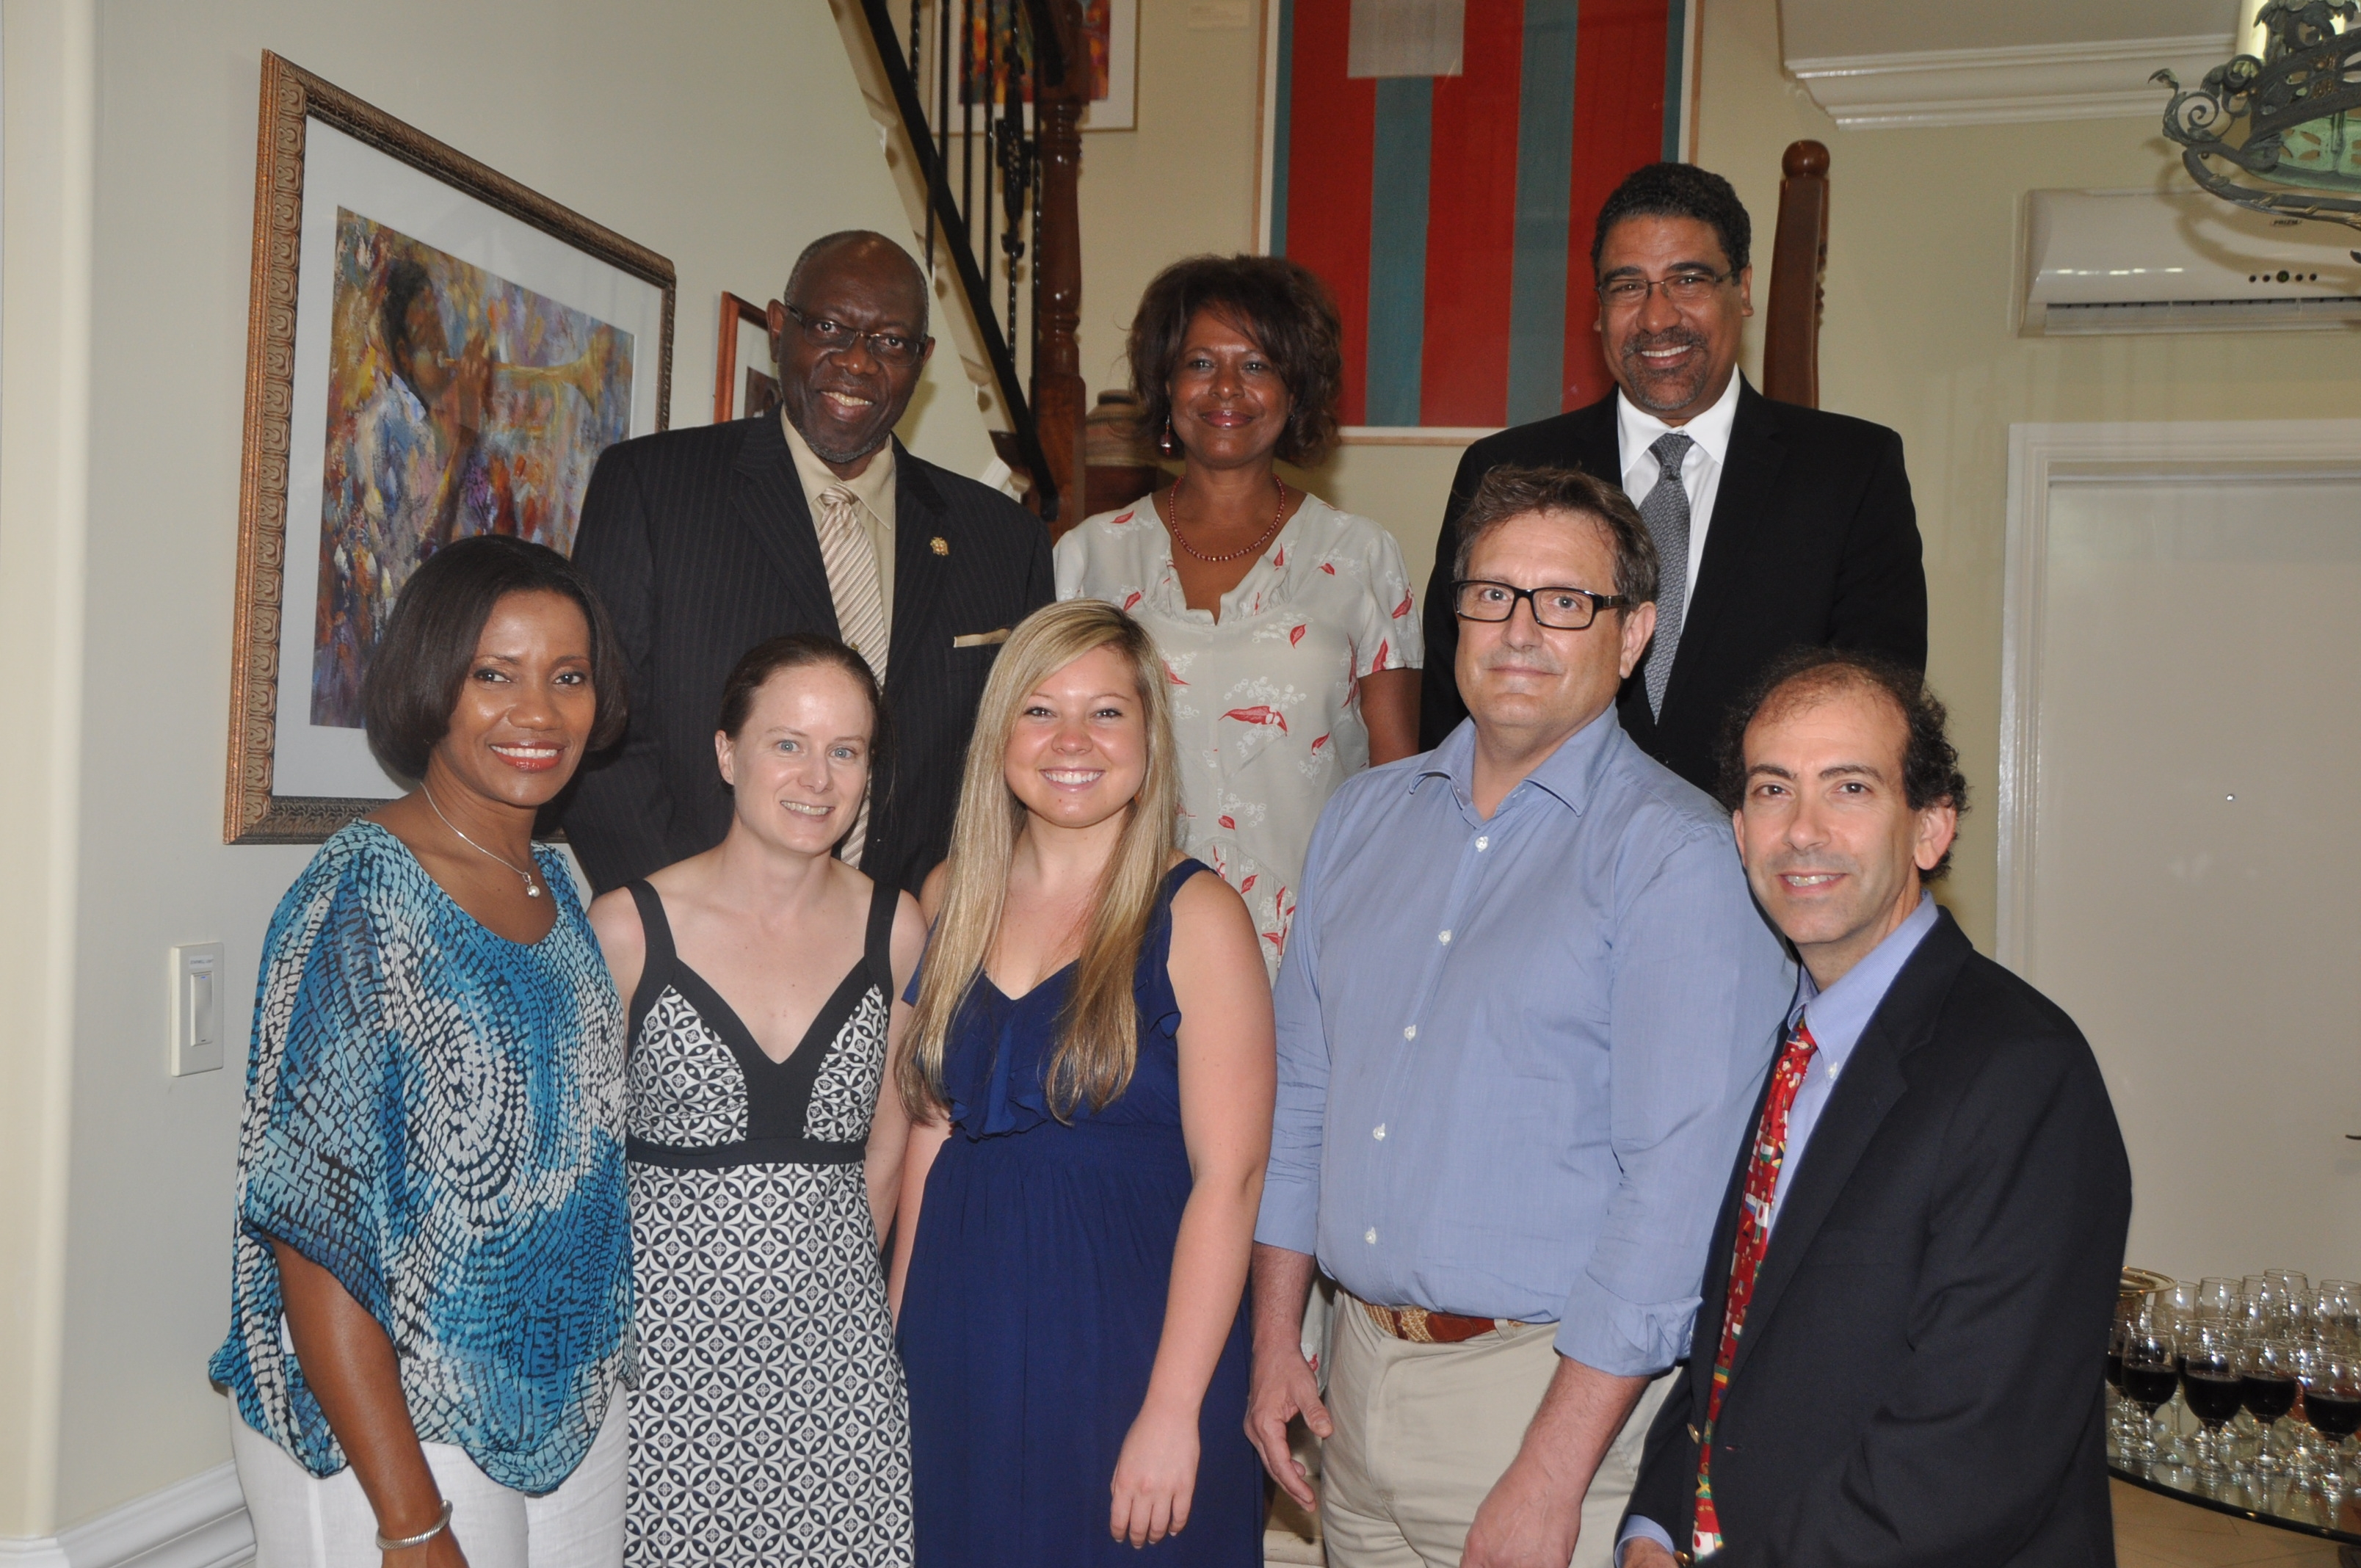 Mark Gormley, M.D. (far right) pictured the U.S. Ambassador to Jamaica, Jamaica's Minister of Health and Minister of Tourism, along with fellow volunteers.